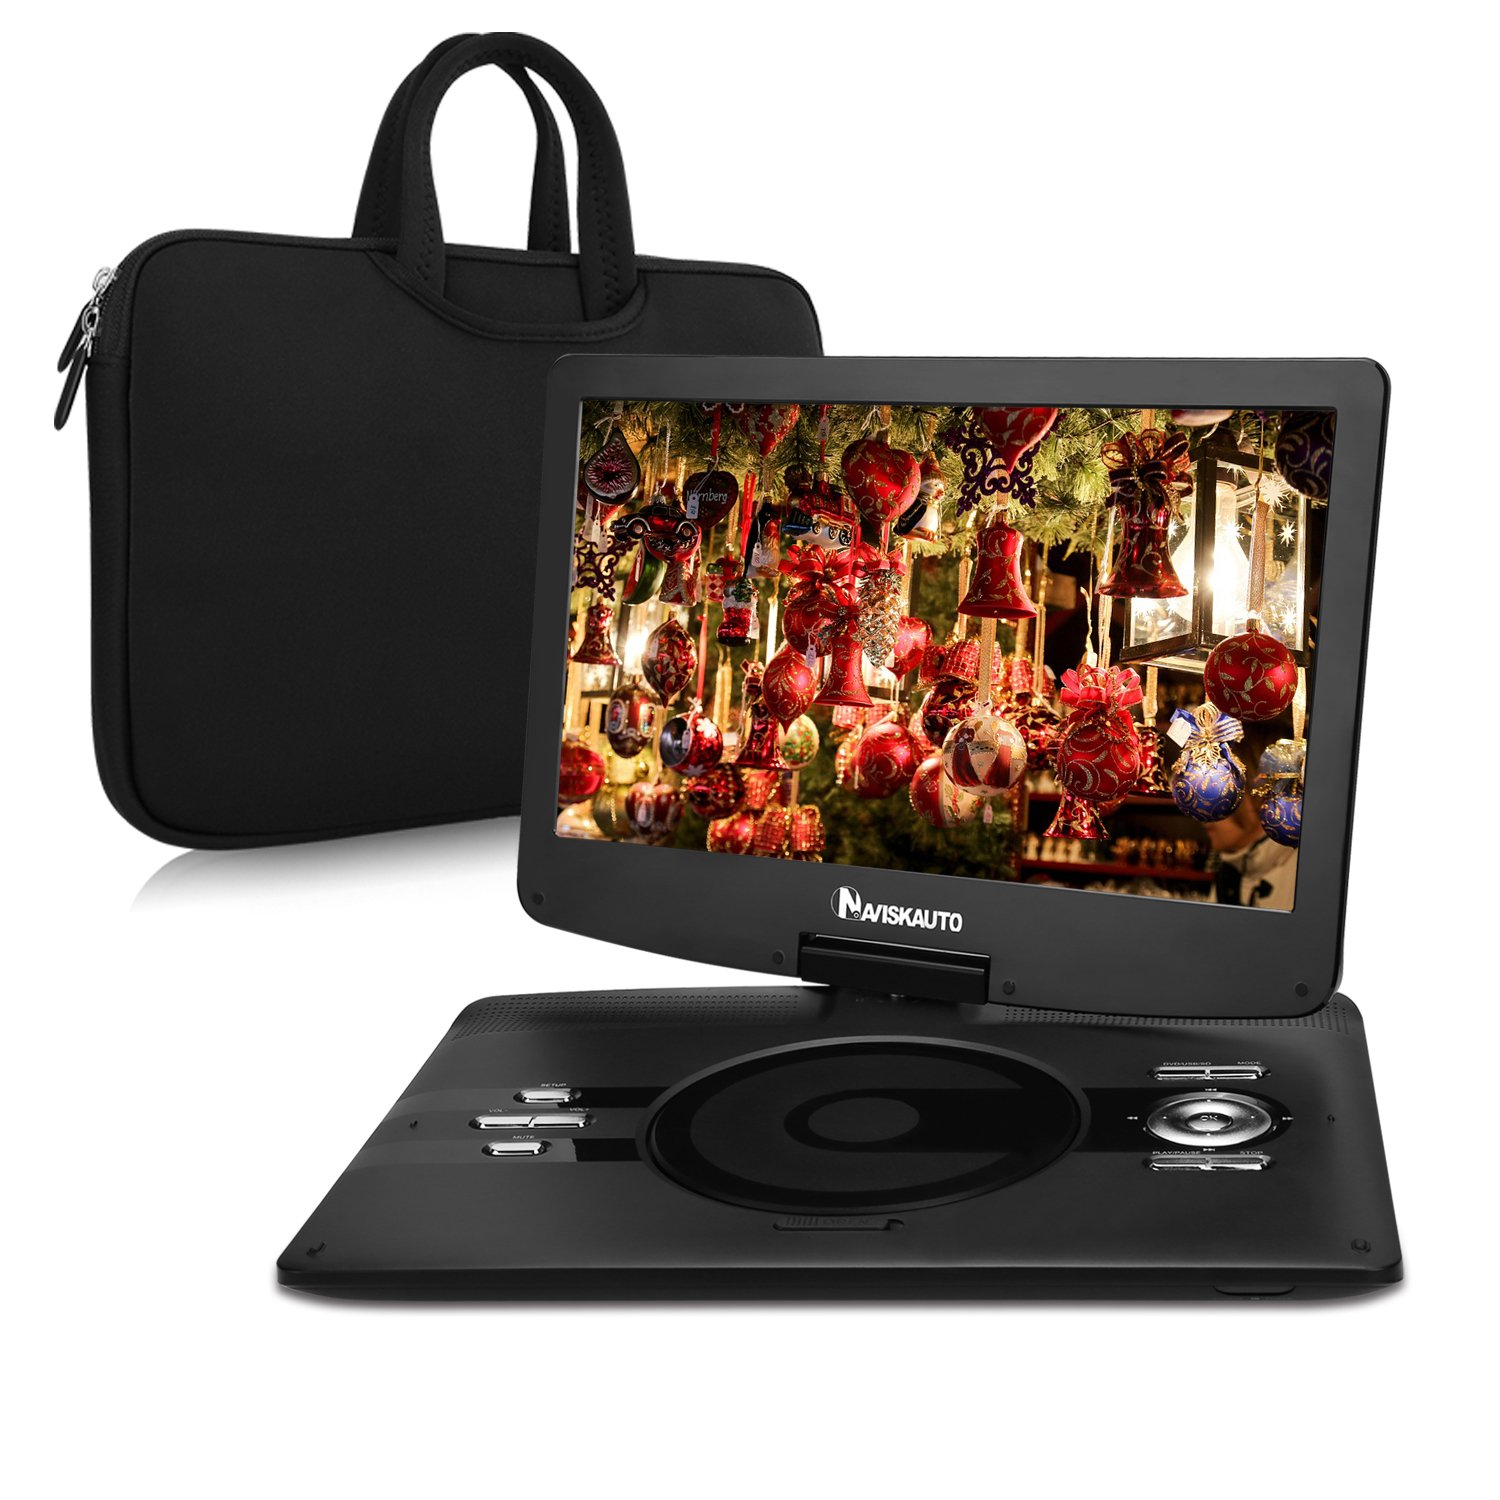 NAVISKAUTO 12.5 Inch HD Portable DVD/CD Player USB/SD Reader with HD 1366x768 Digital TFT 270° Swivel Screen, 5-Hour Built-In Rechargeable Battery, 3m AC/DC Adapter and Carrying Case-Black by NaviSkauto